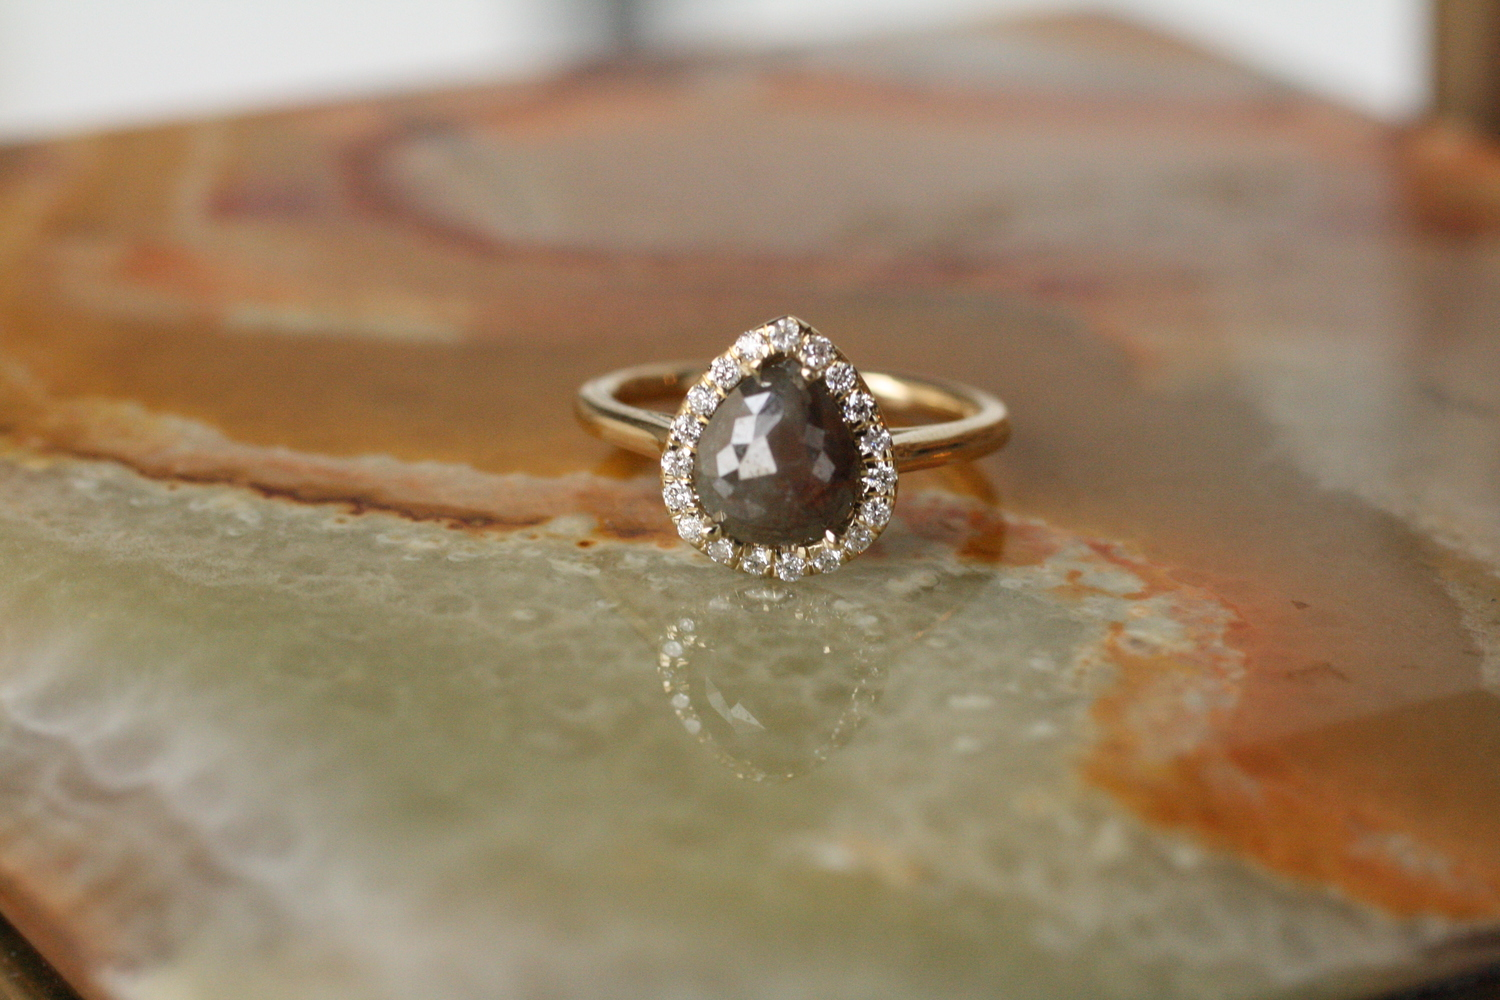 Grey+Pear+Diamond+w+Pave+Diamond+Halo+YG+Engagement+Ring_08.jpg